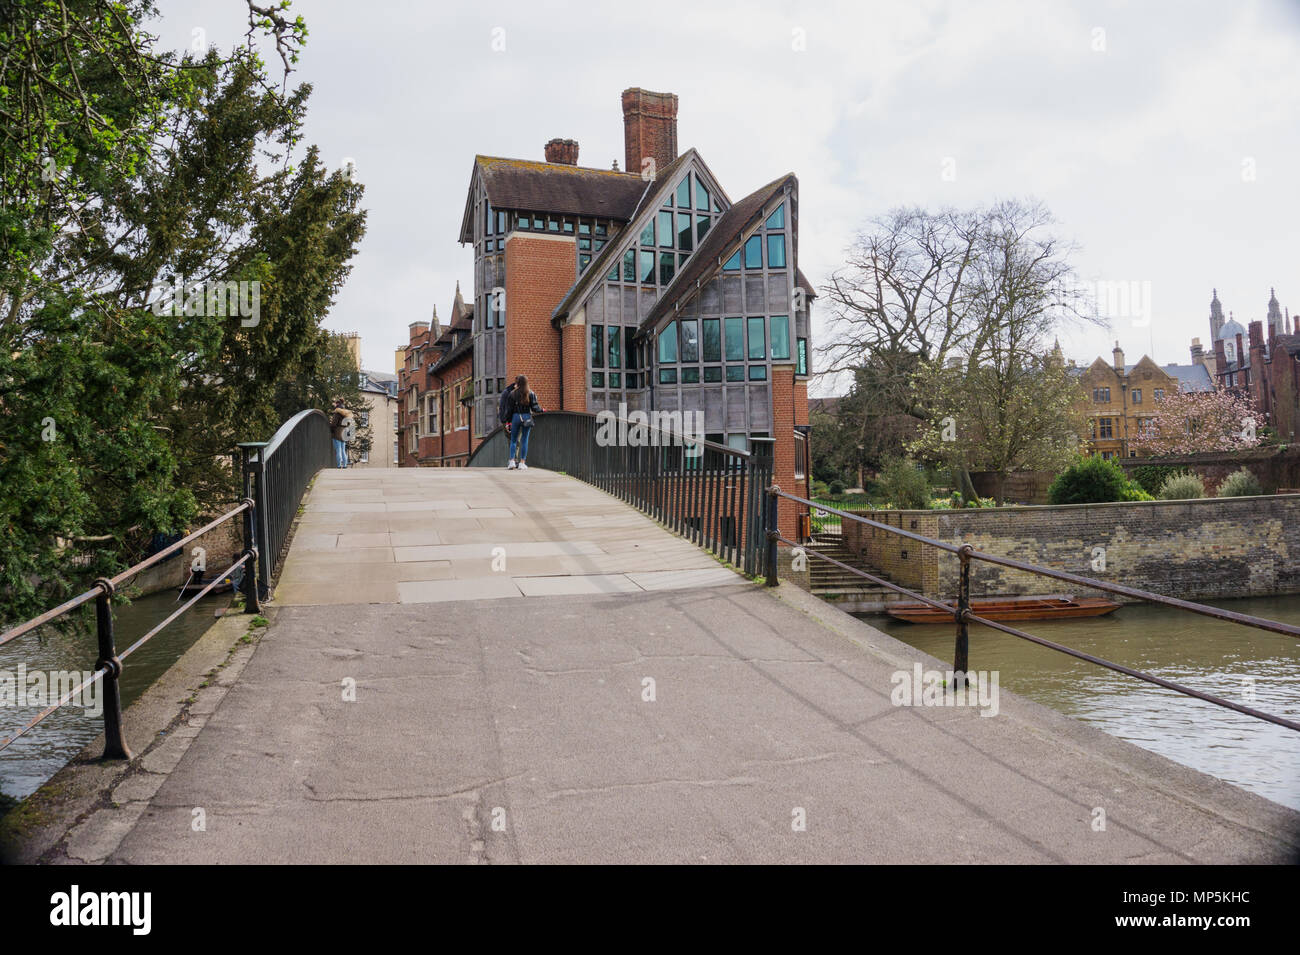 Jerwood Library at Trinity Hall, College, Cambridge, England, UK Stock Photo